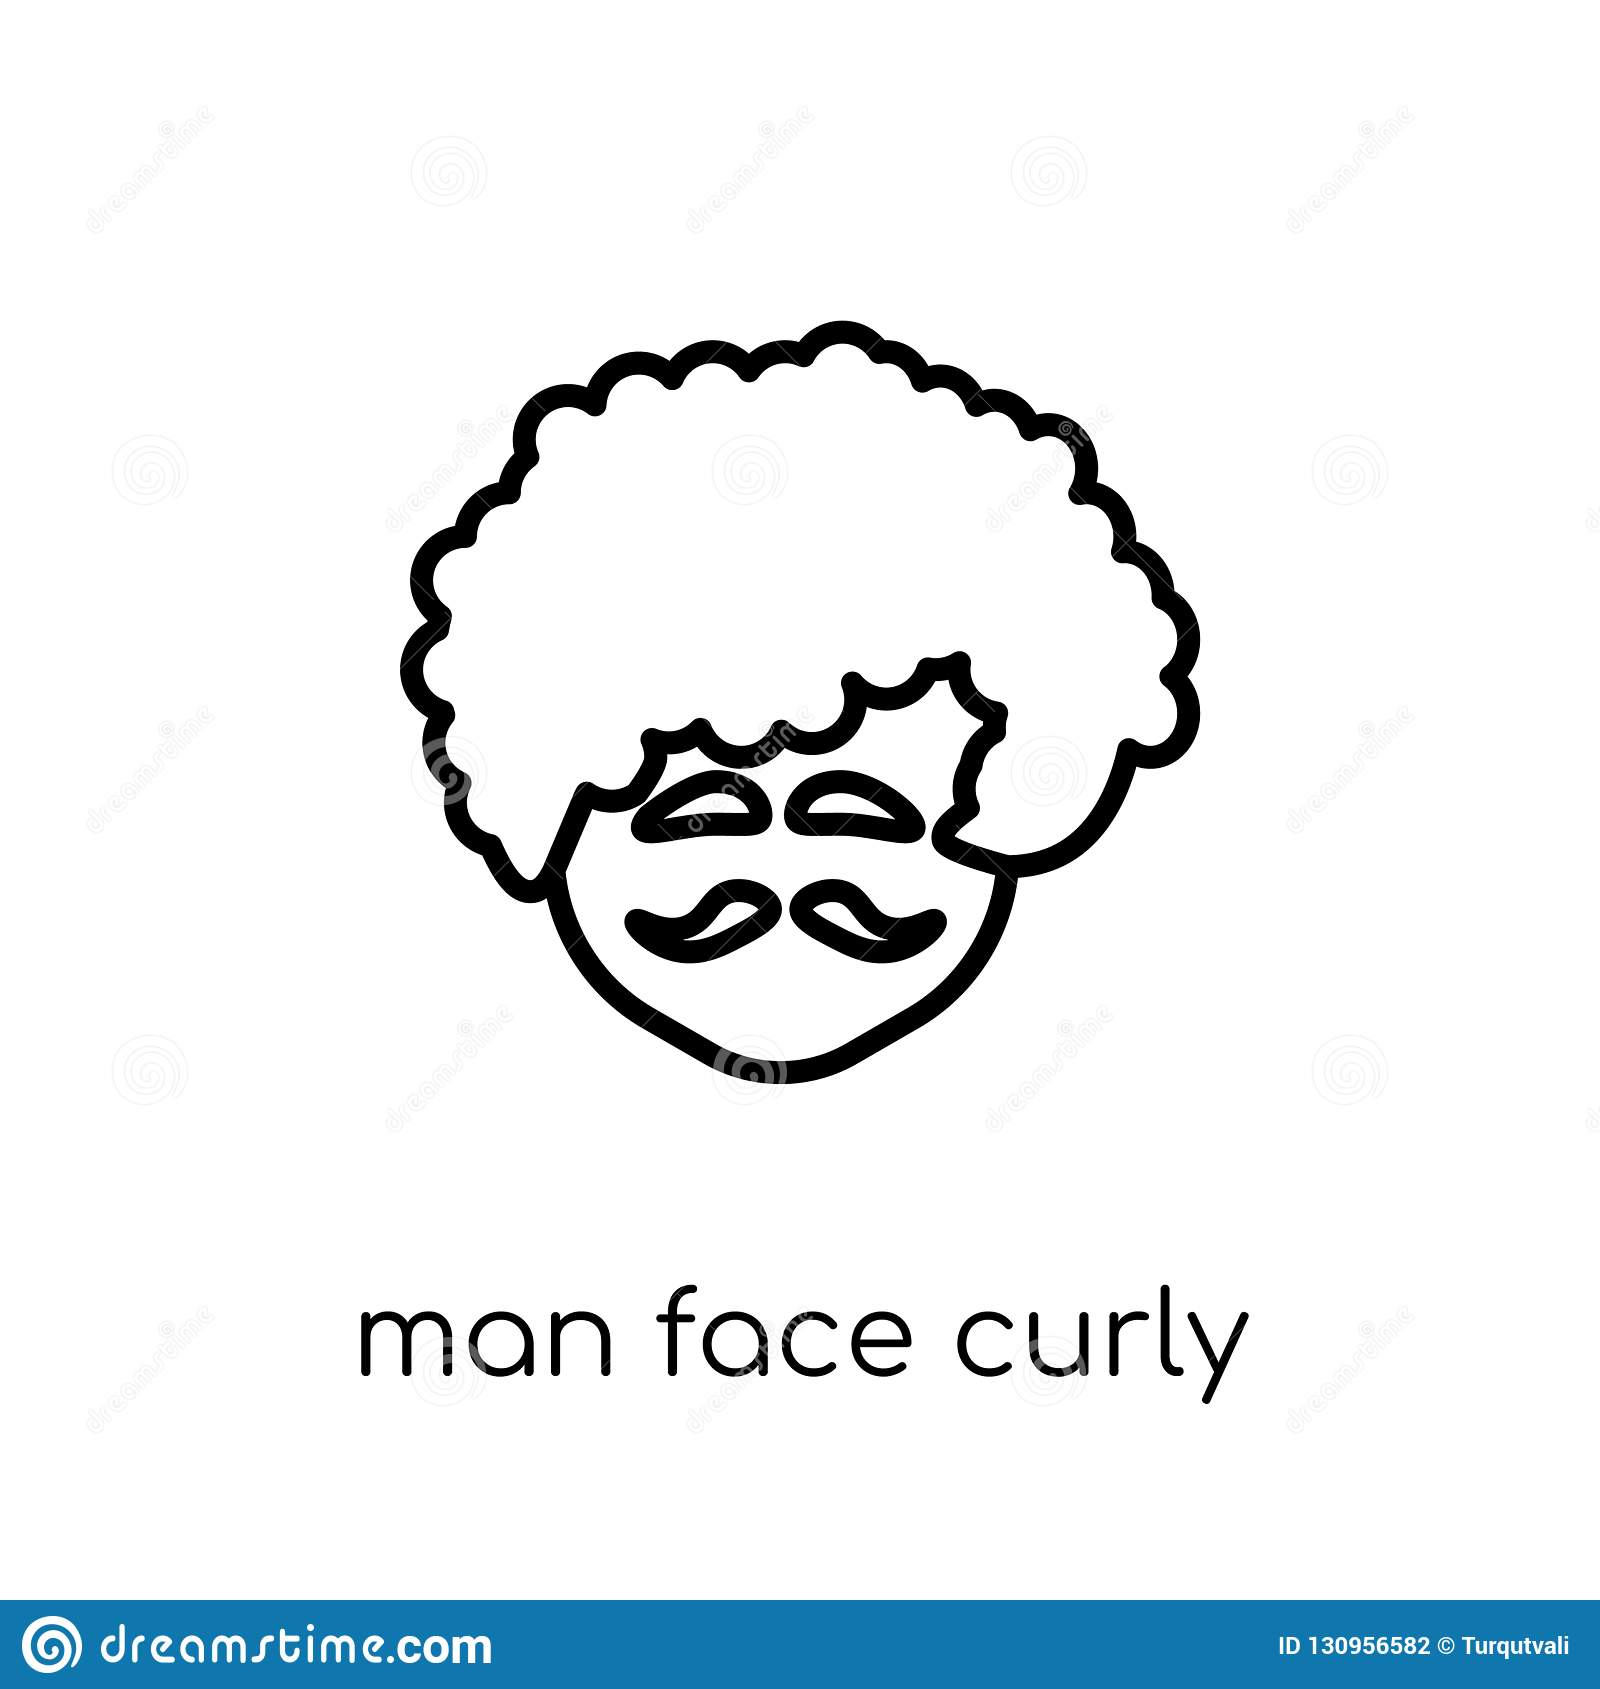 Man face curly hair and moustache icon. Trendy modern flat linea